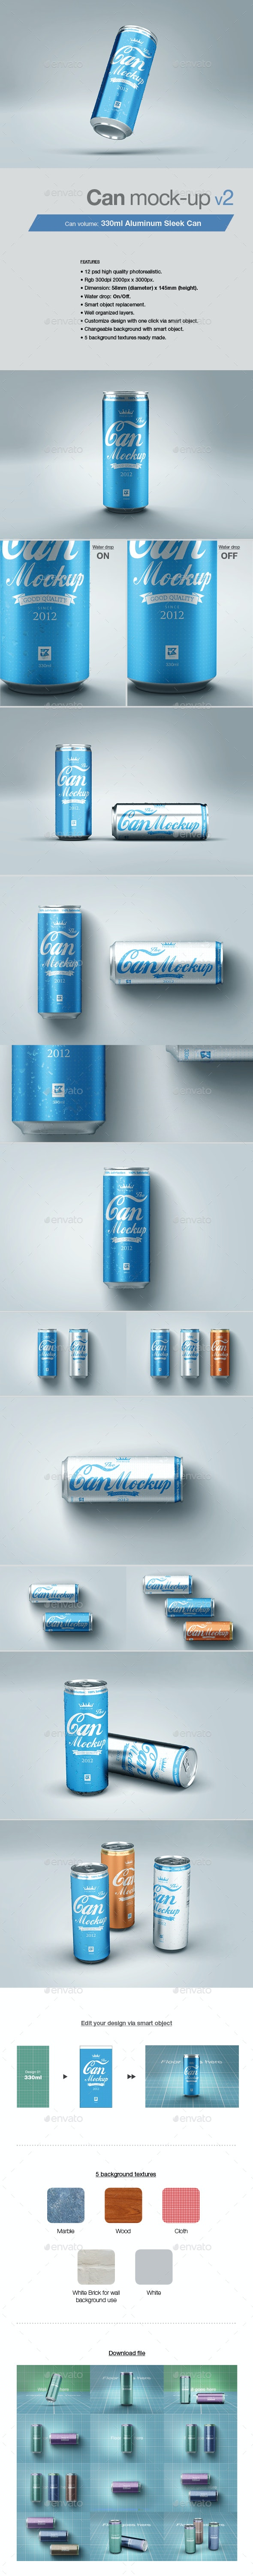 Can Mock-up v2 - Food and Drink Packaging